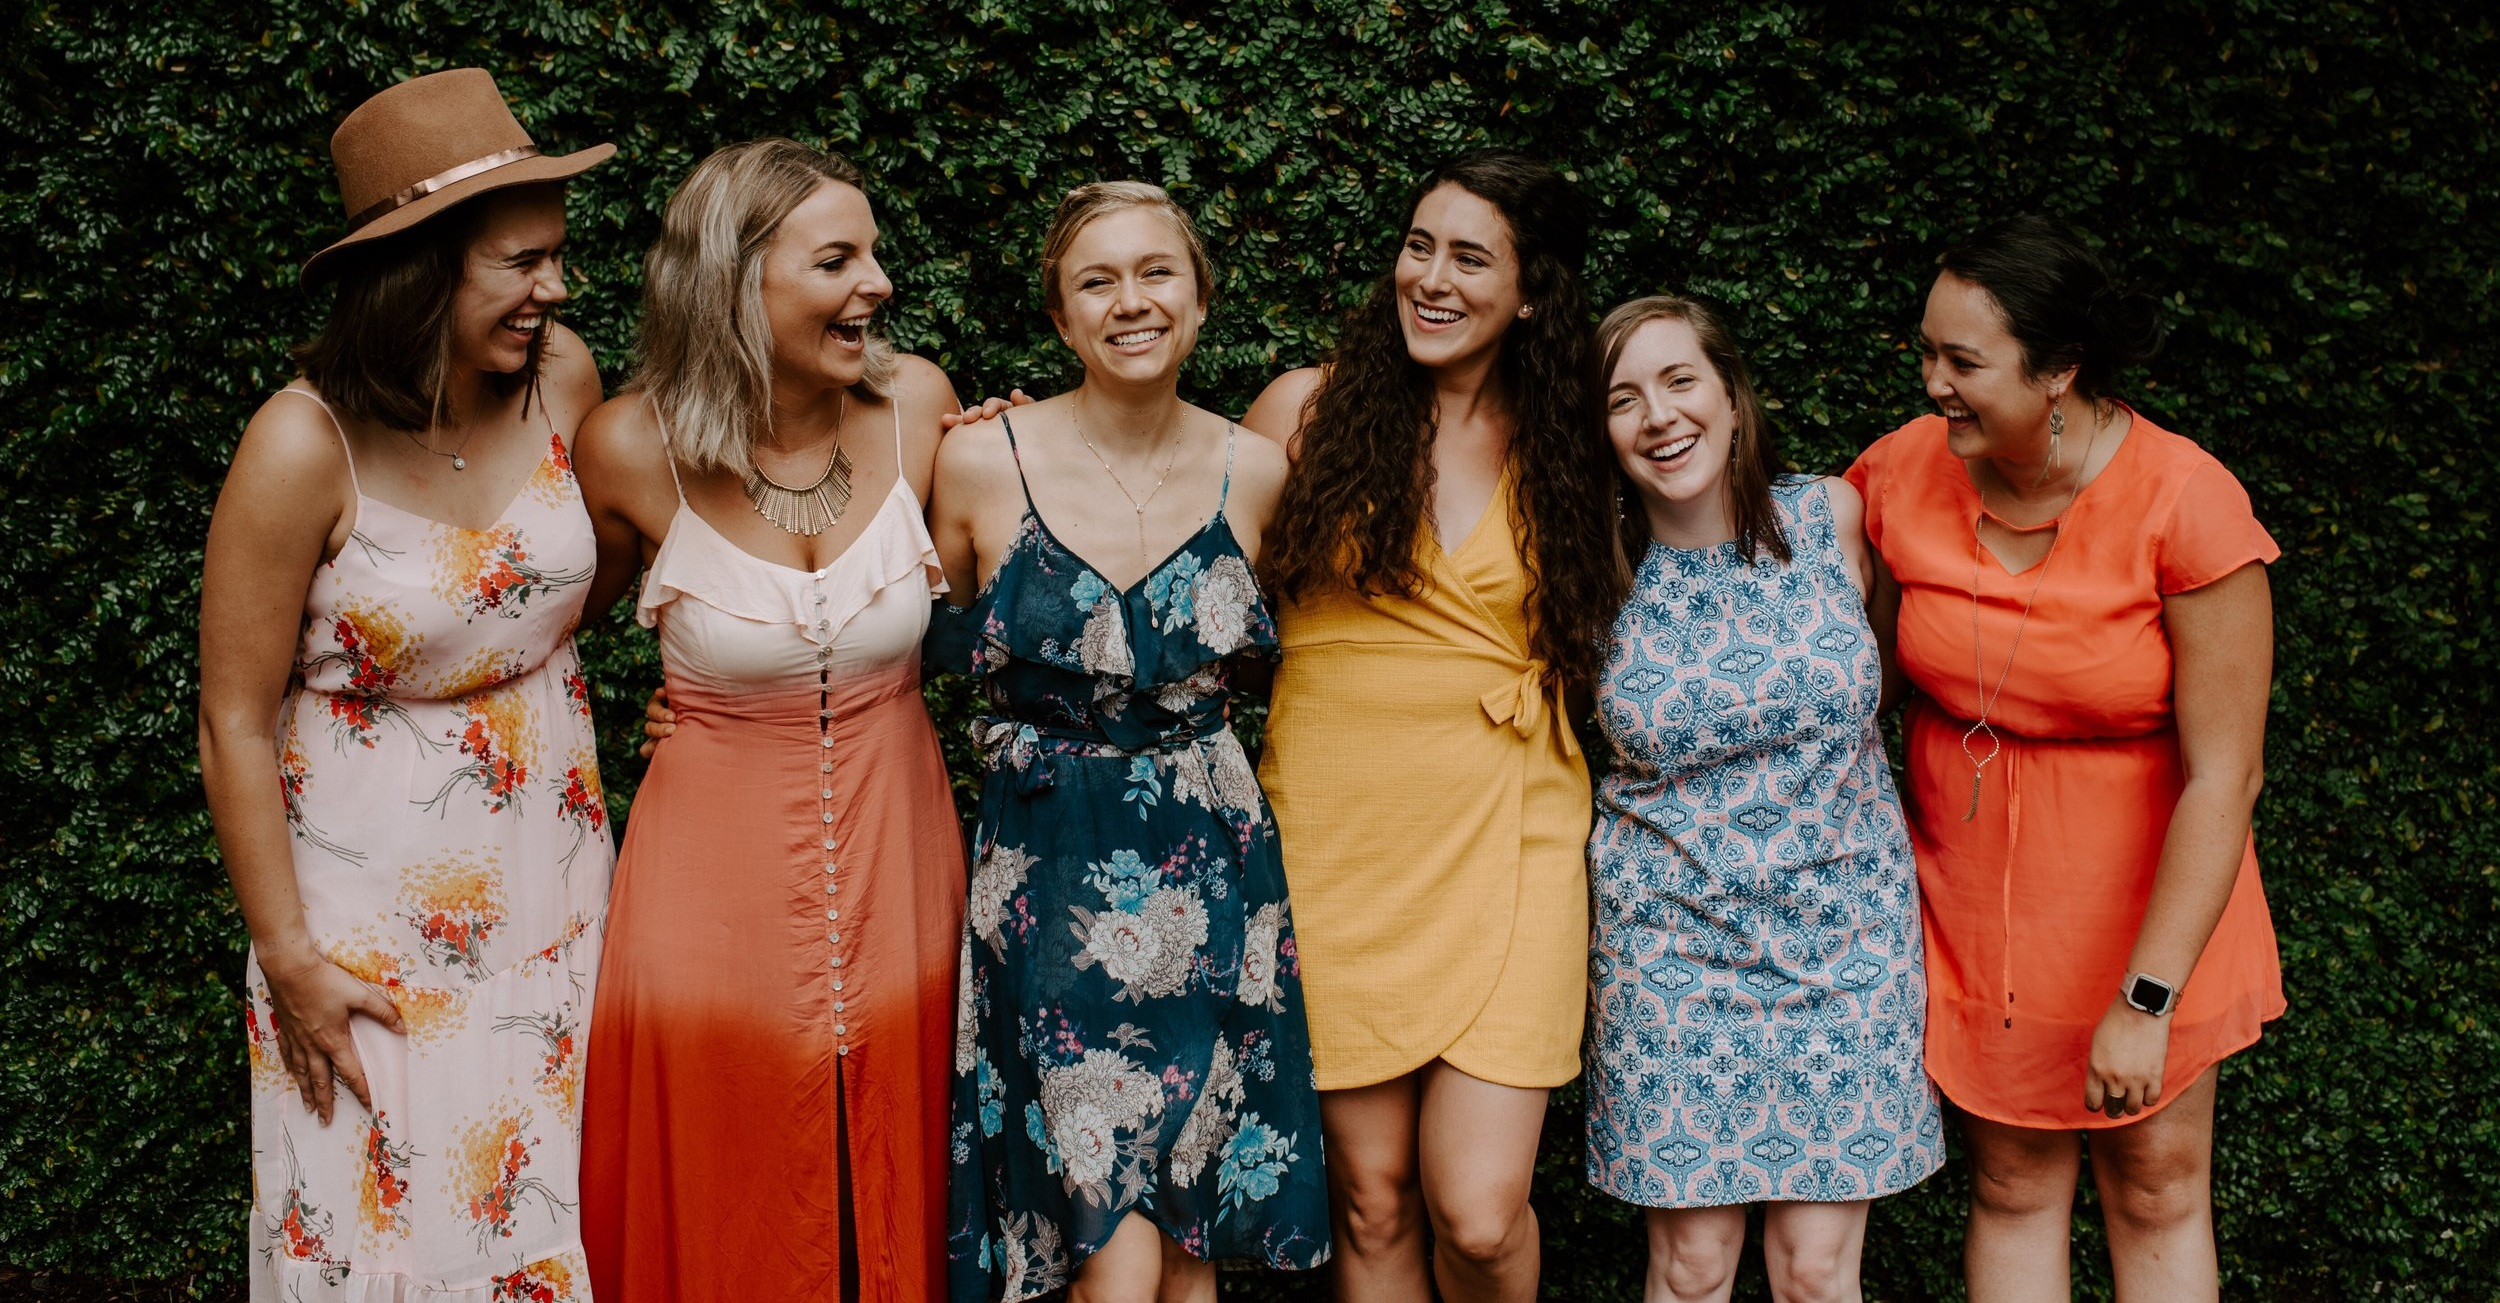 group-of-girlfriends-at-a-garden-party_t20_6lvVdL.jpg